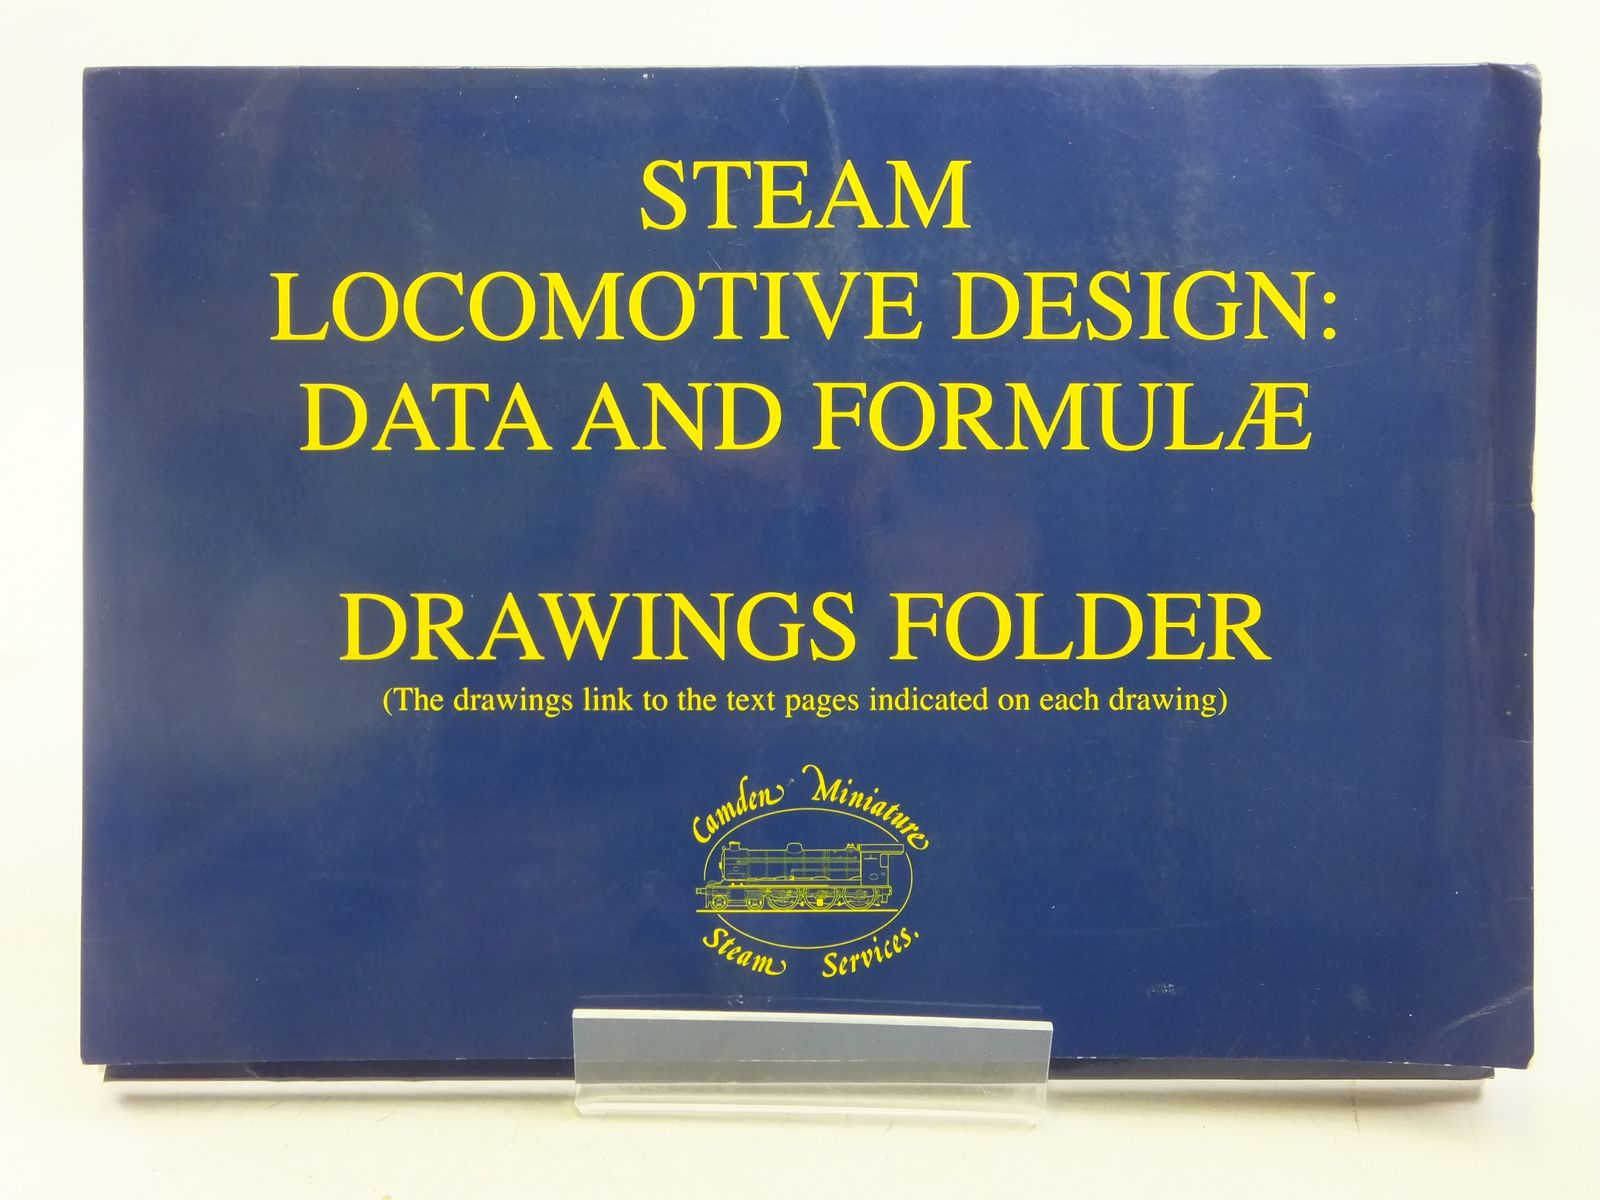 Photo of STEAM LOCOMOTIVE DESIGN: DATA AND FORMULAE DRAWINGS FOLDER published by Camden Miniature Steam Services (STOCK CODE: 2119159)  for sale by Stella & Rose's Books